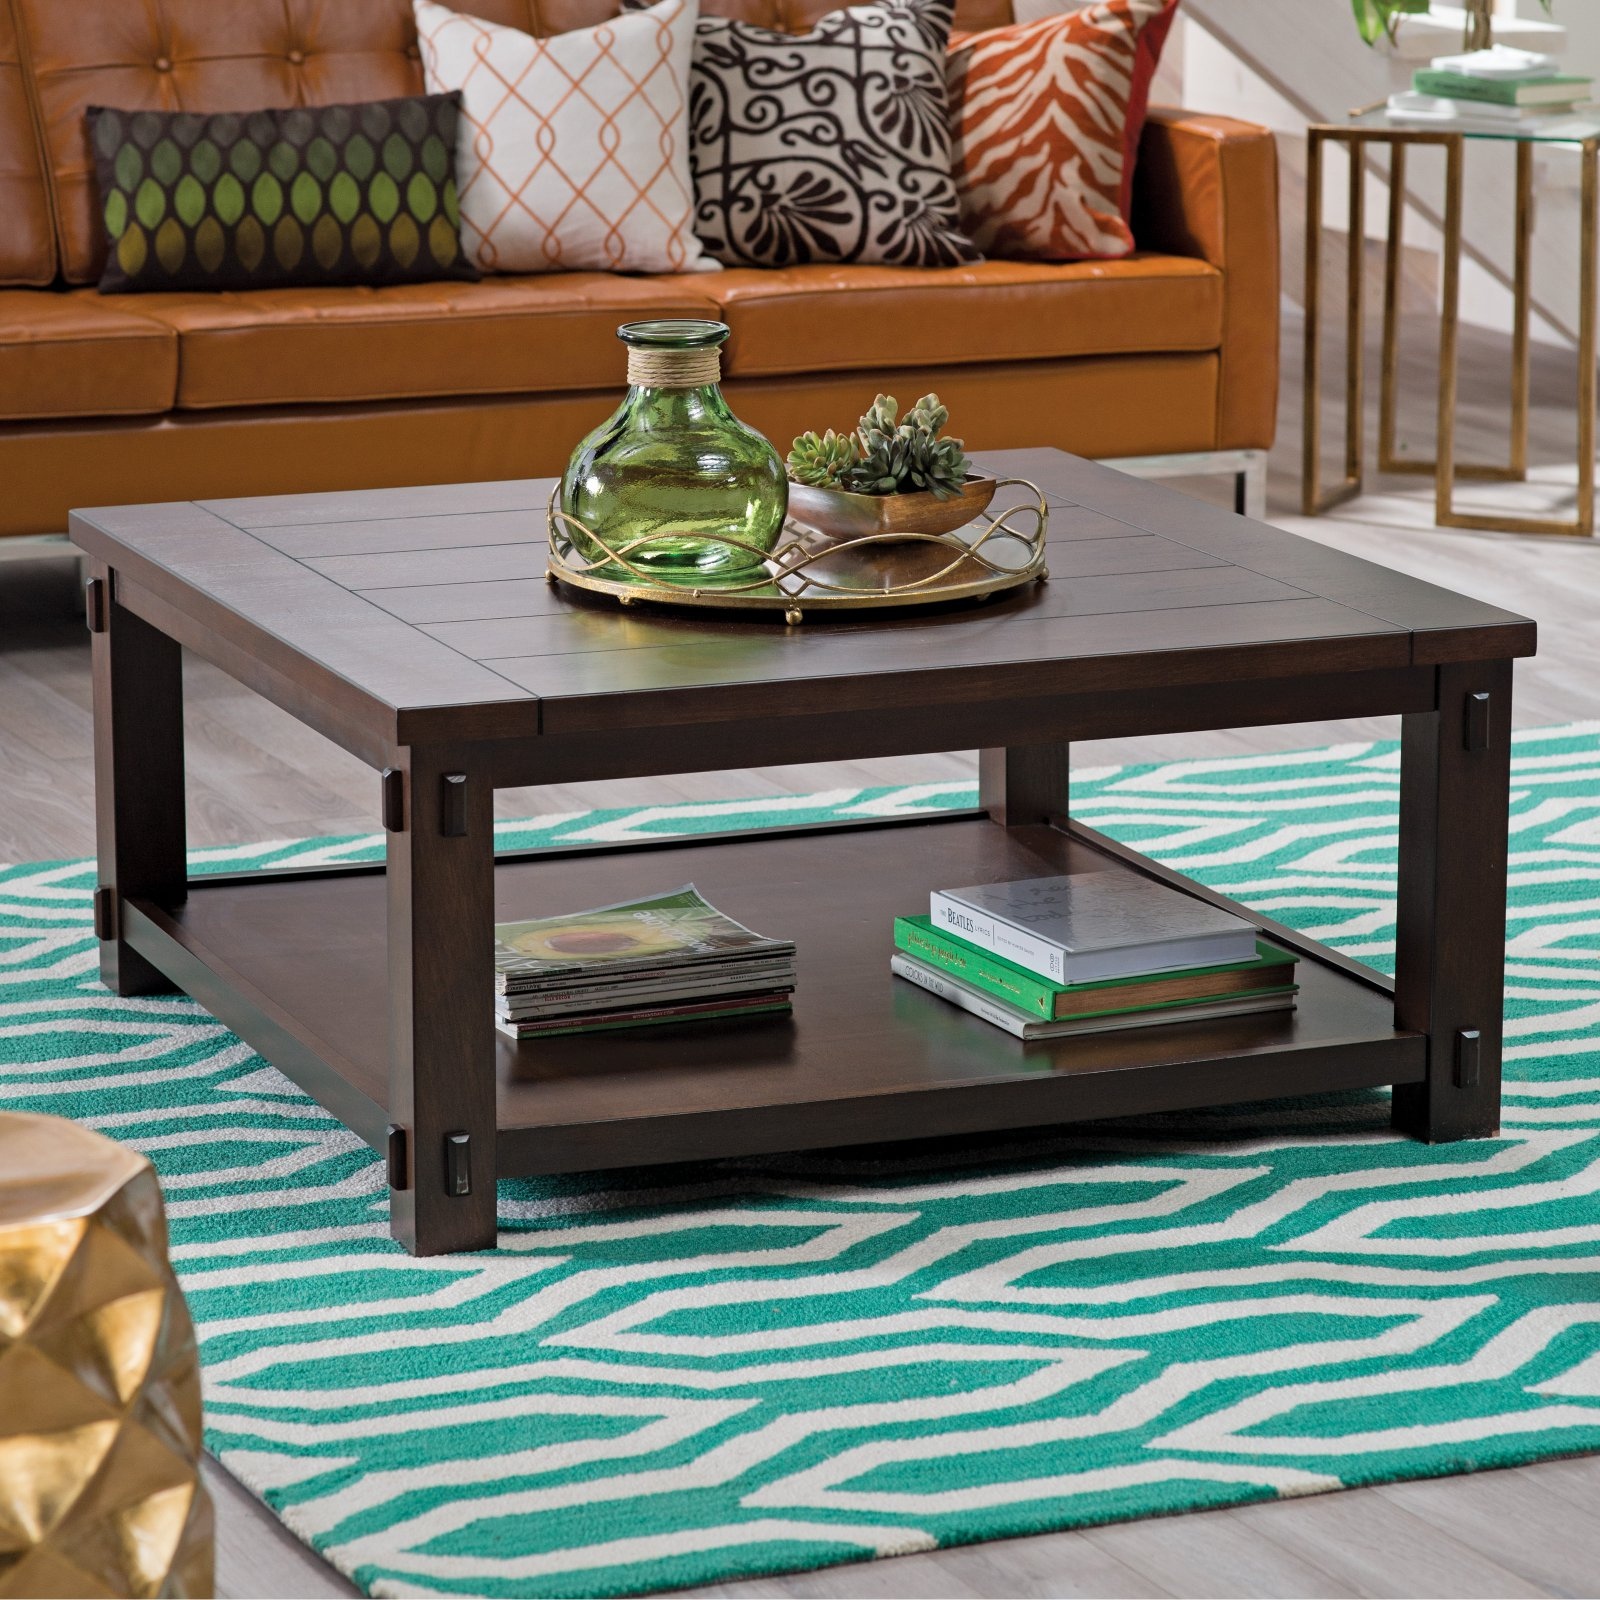 Details About Coffee Table Modern Home Living Room Espresso Storage Square Wood Furniture New